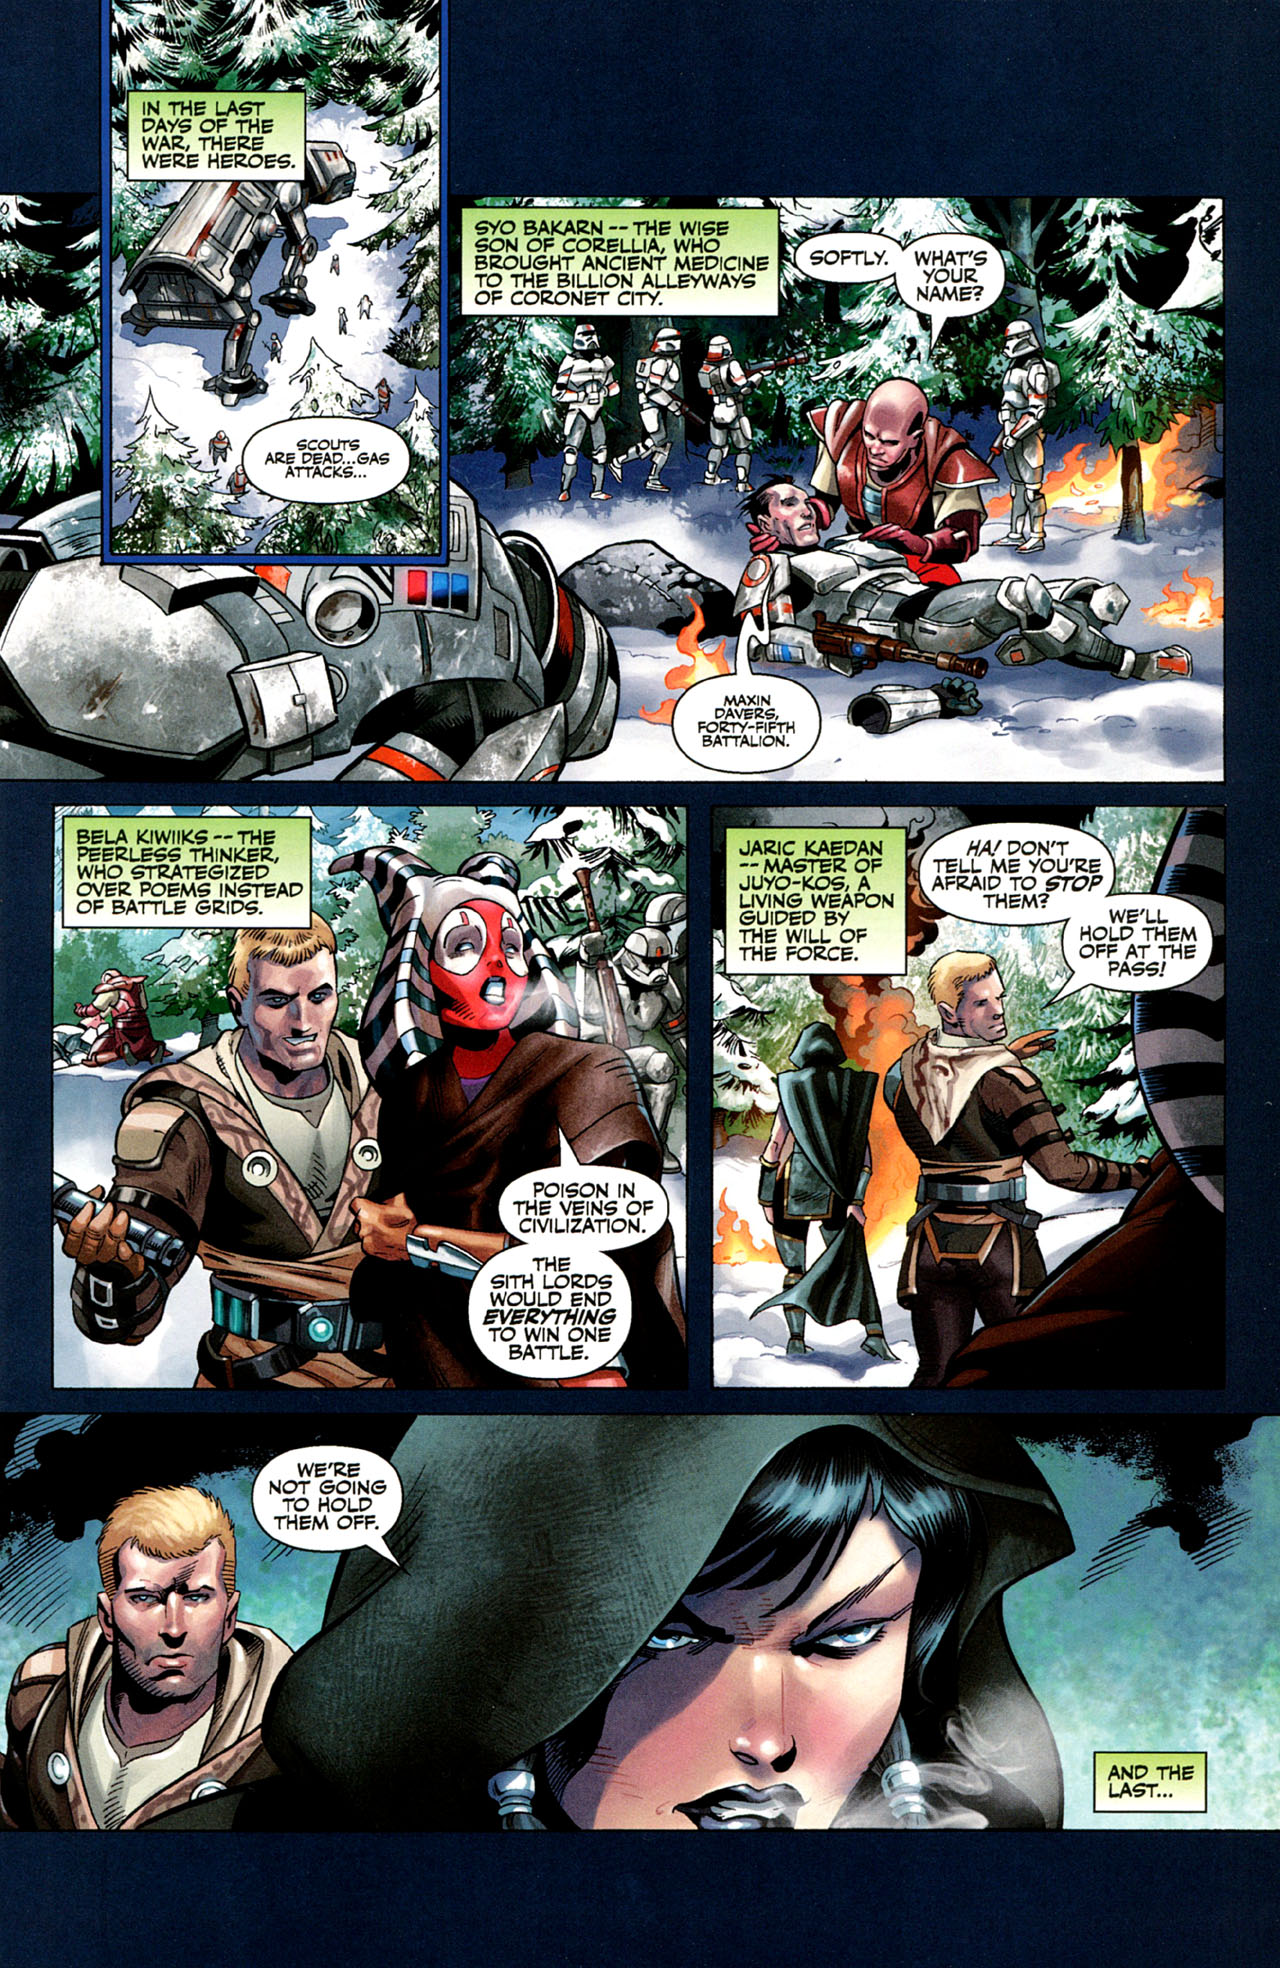 Read online Star Wars: The Old Republic - The Lost Suns comic -  Issue #1 - 3